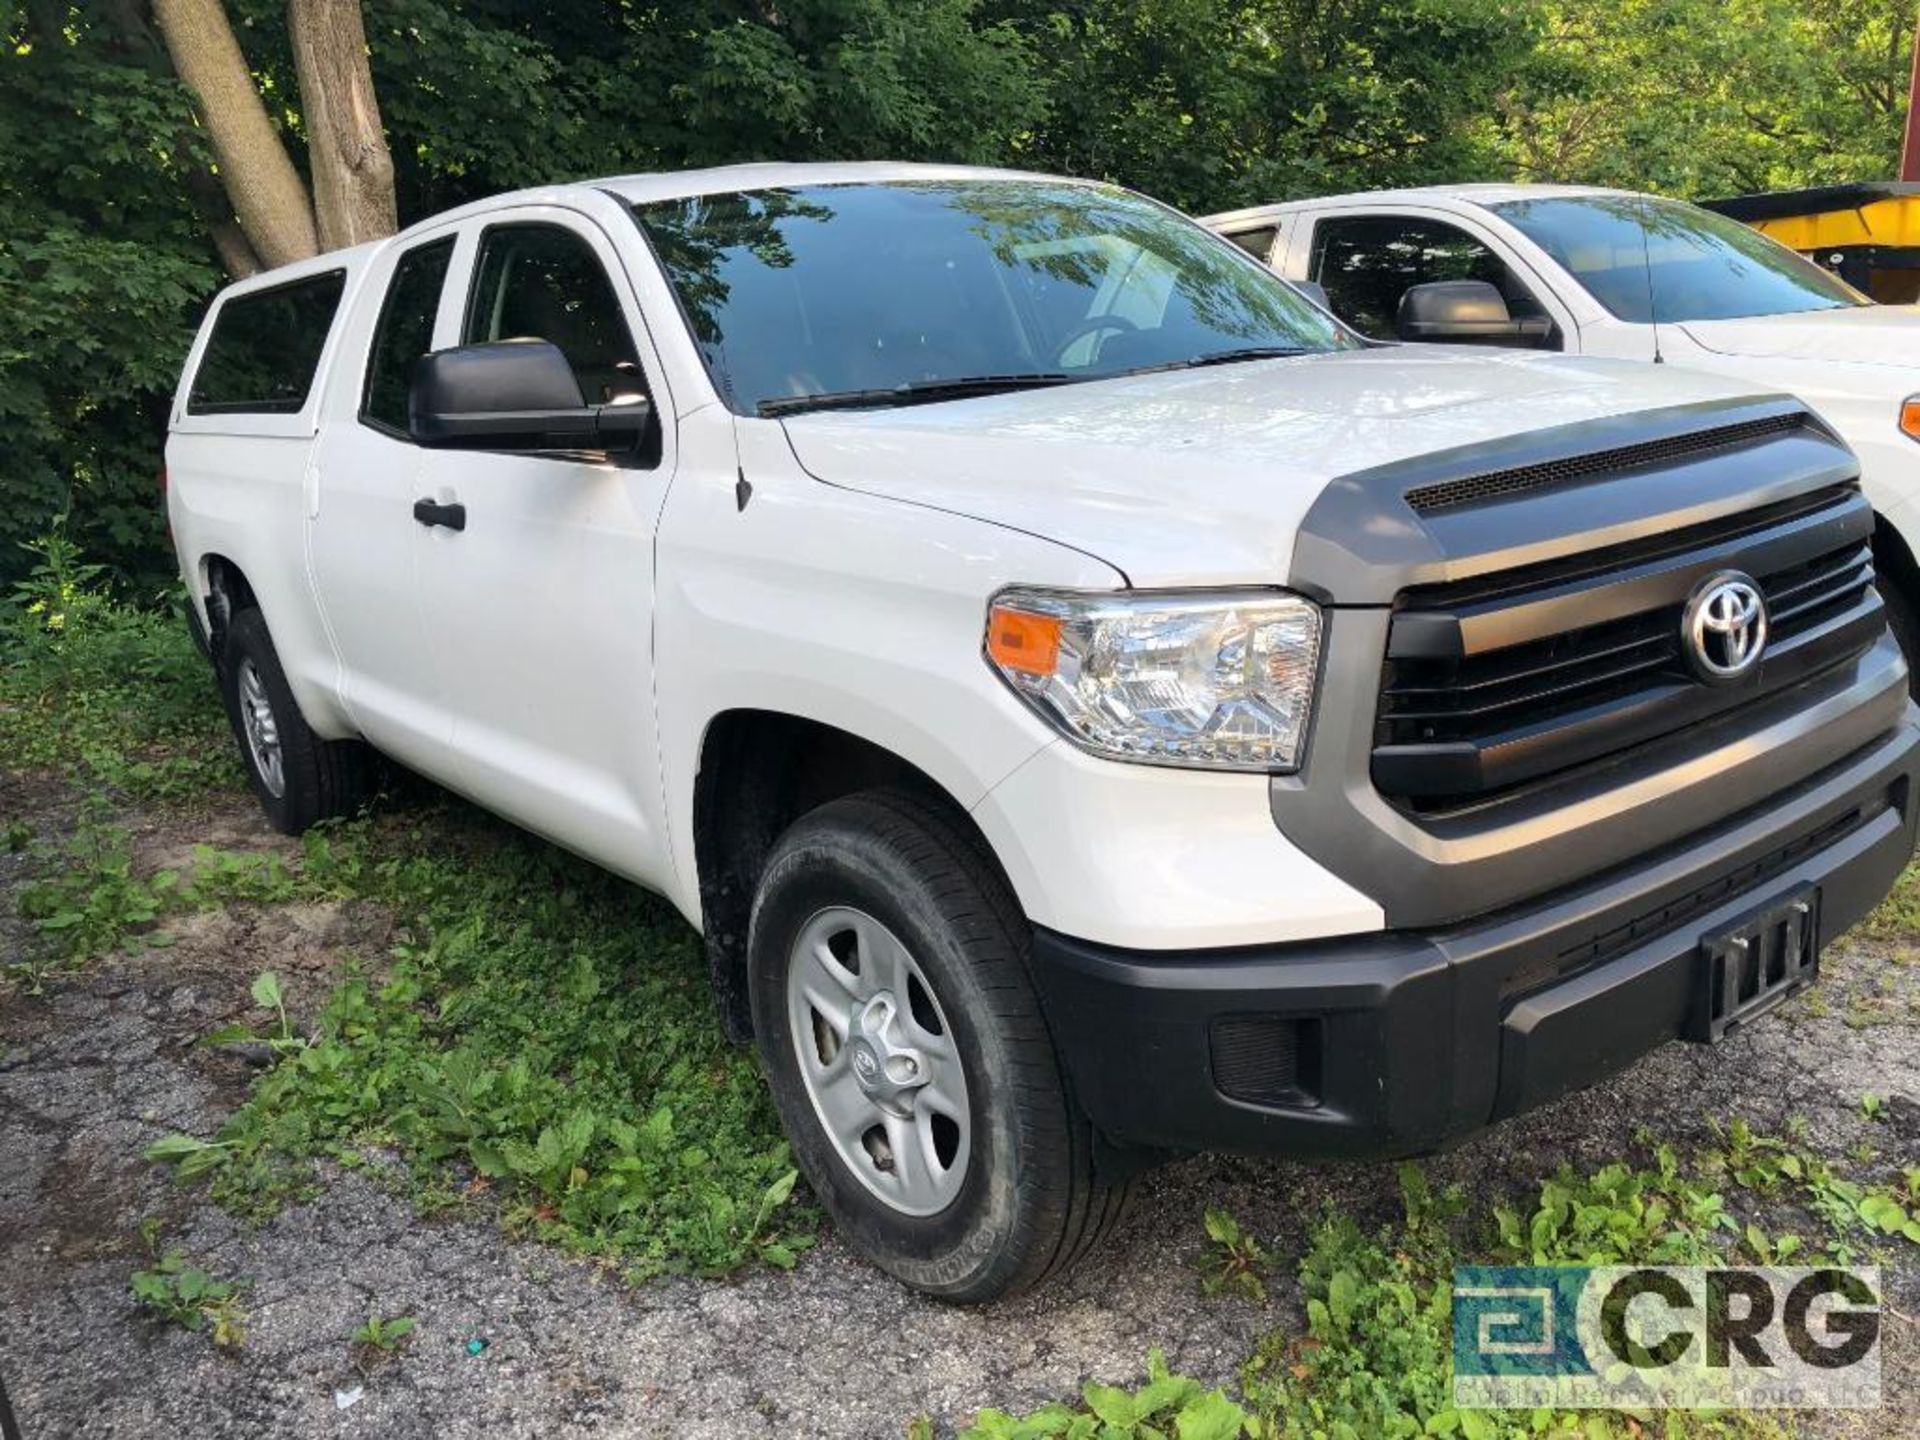 Lot 333 - 2017 Toyota Tundra 4X4 double cab pick truck with bed cap, 32075 miles, I-Force 4.6 litre V8, AT,